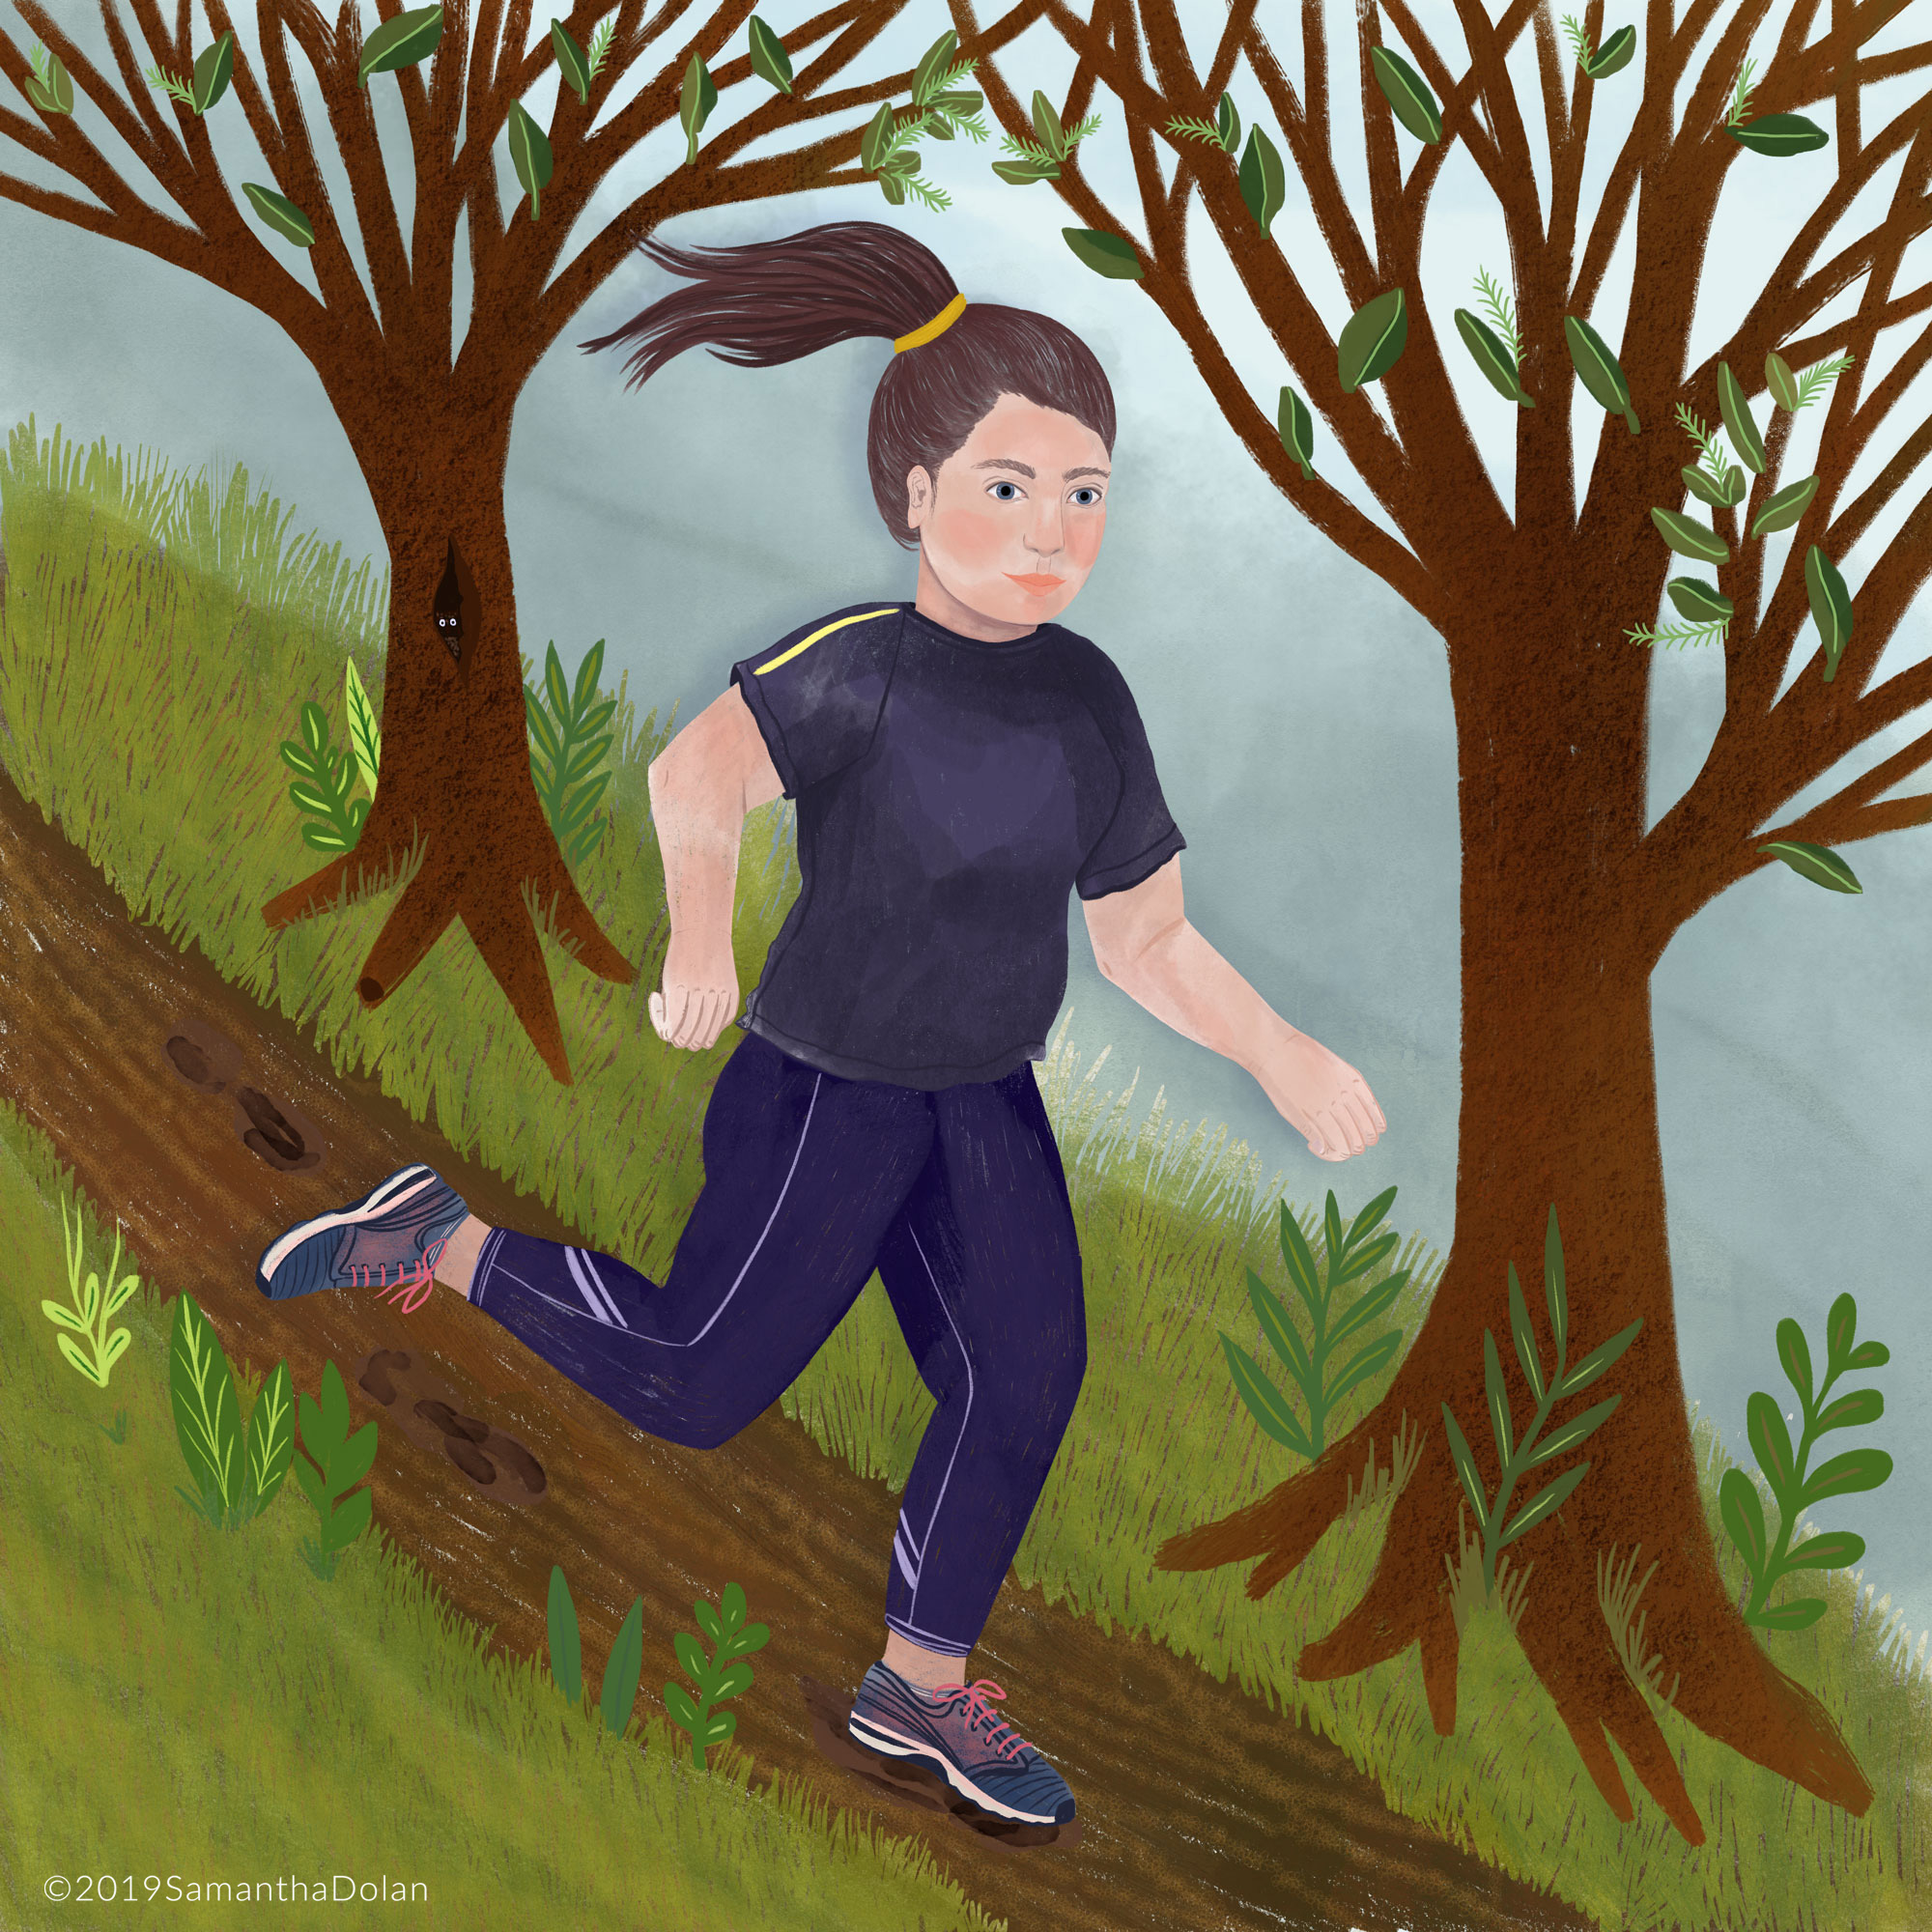 'Run, run, run!' Digital illustration, 2019